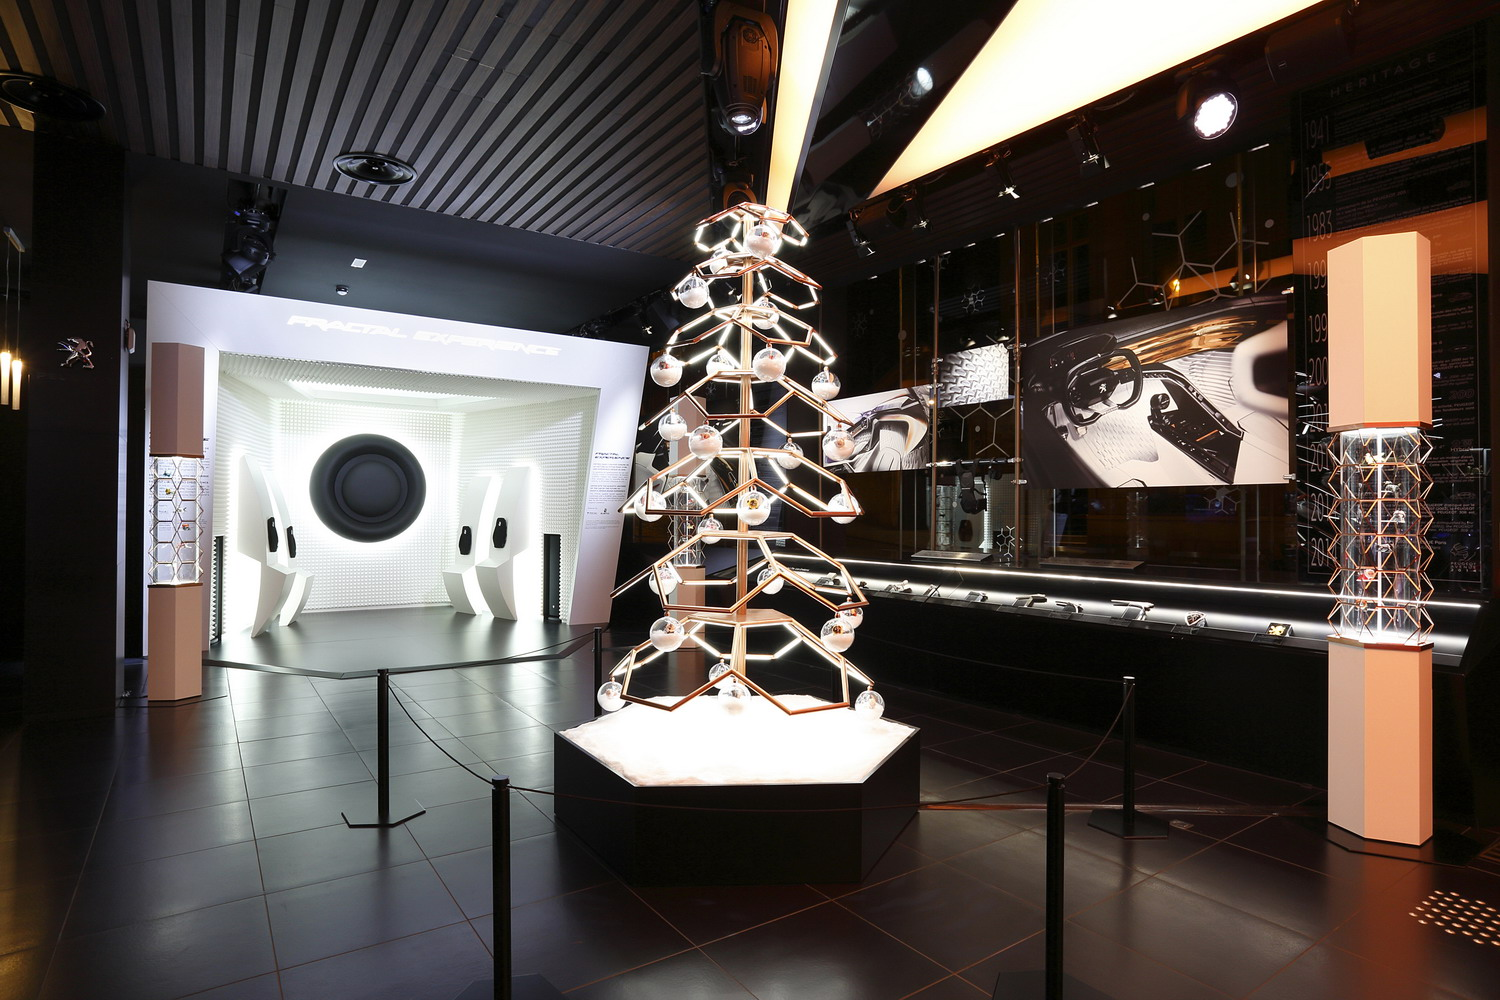 News - Photos - Peugeot Avenue Paris / Inspiring Xmas